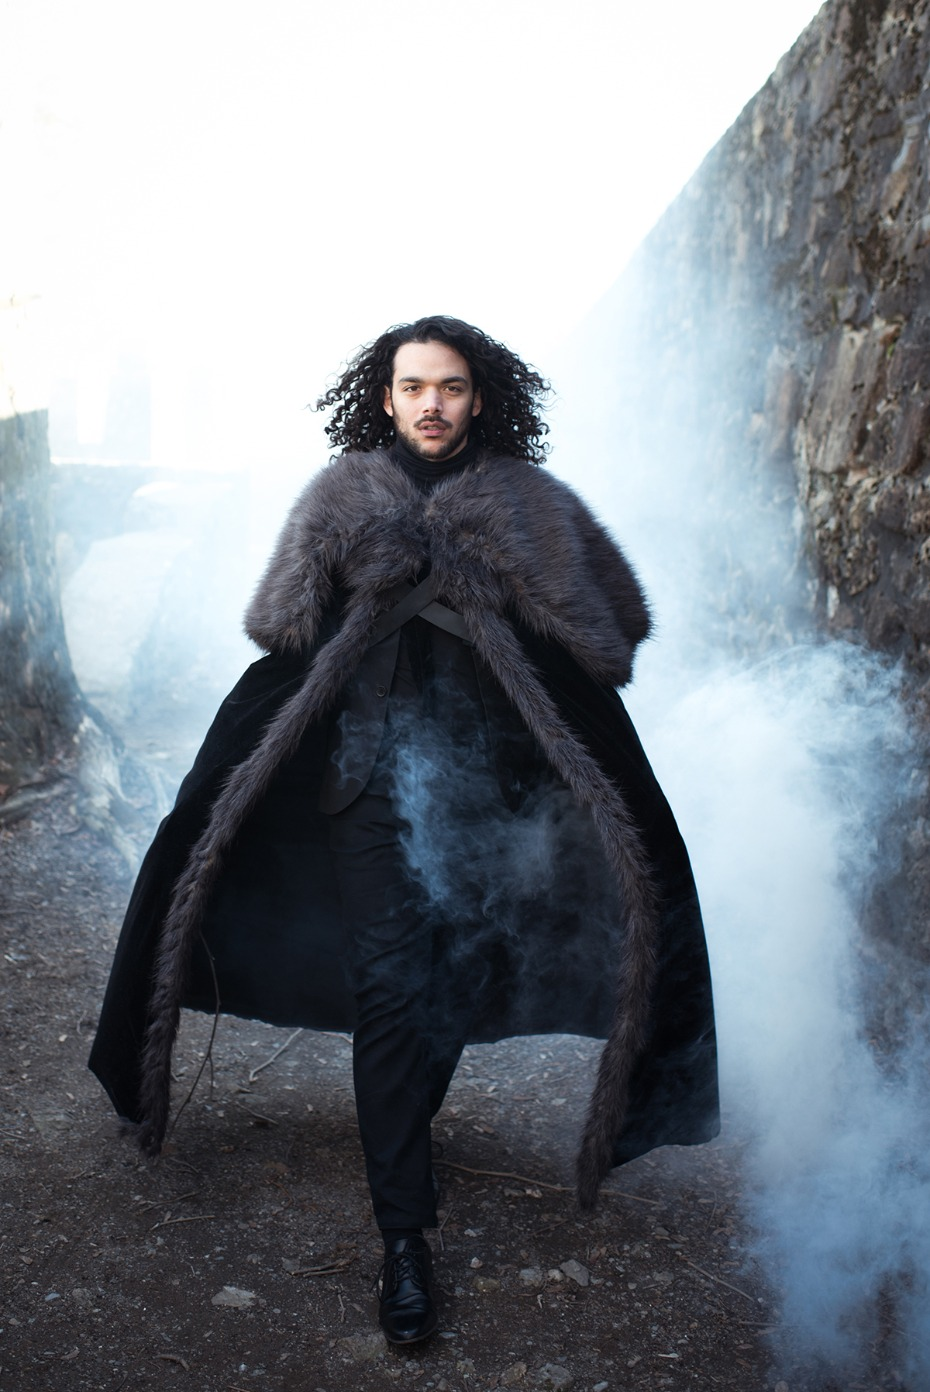 dramatic Jon Snow styled groom portrait